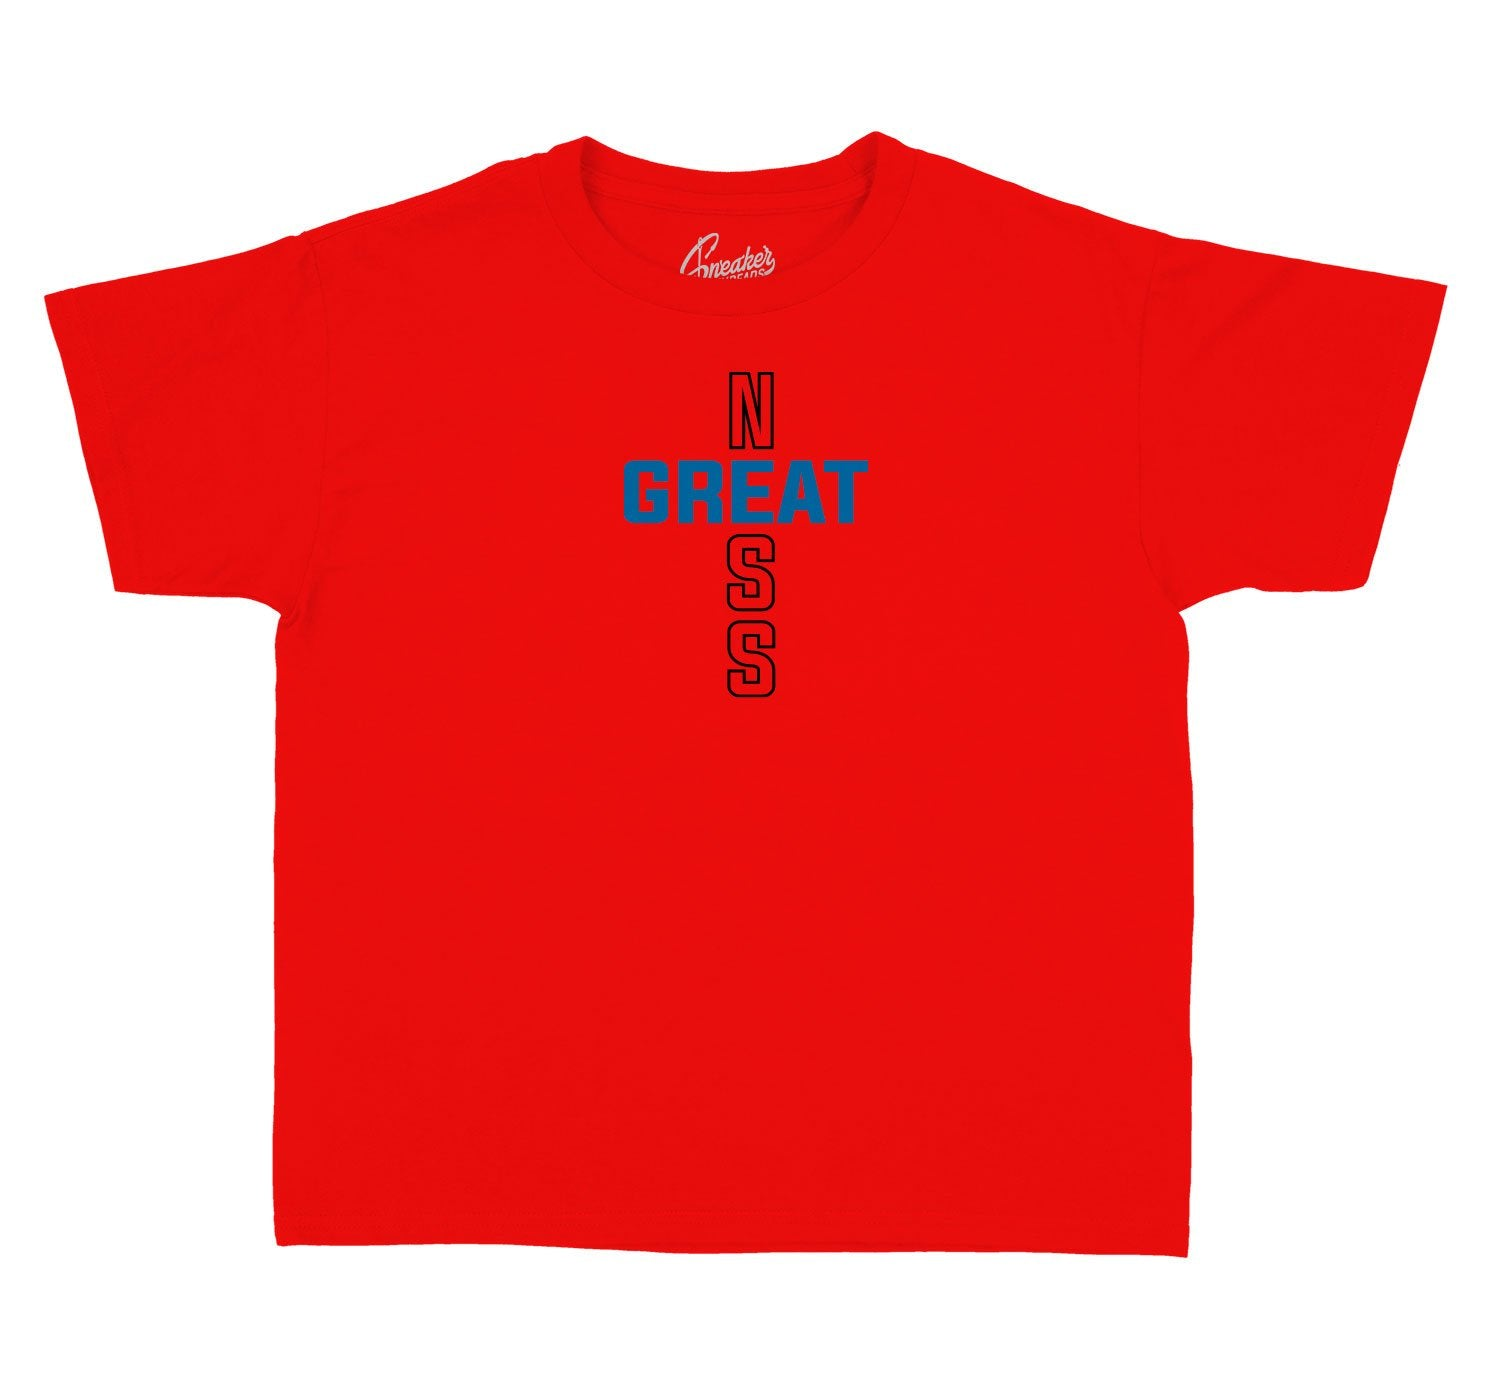 collection of shirts made for kids designed to match the Jordan 4 what the 4 sneaker